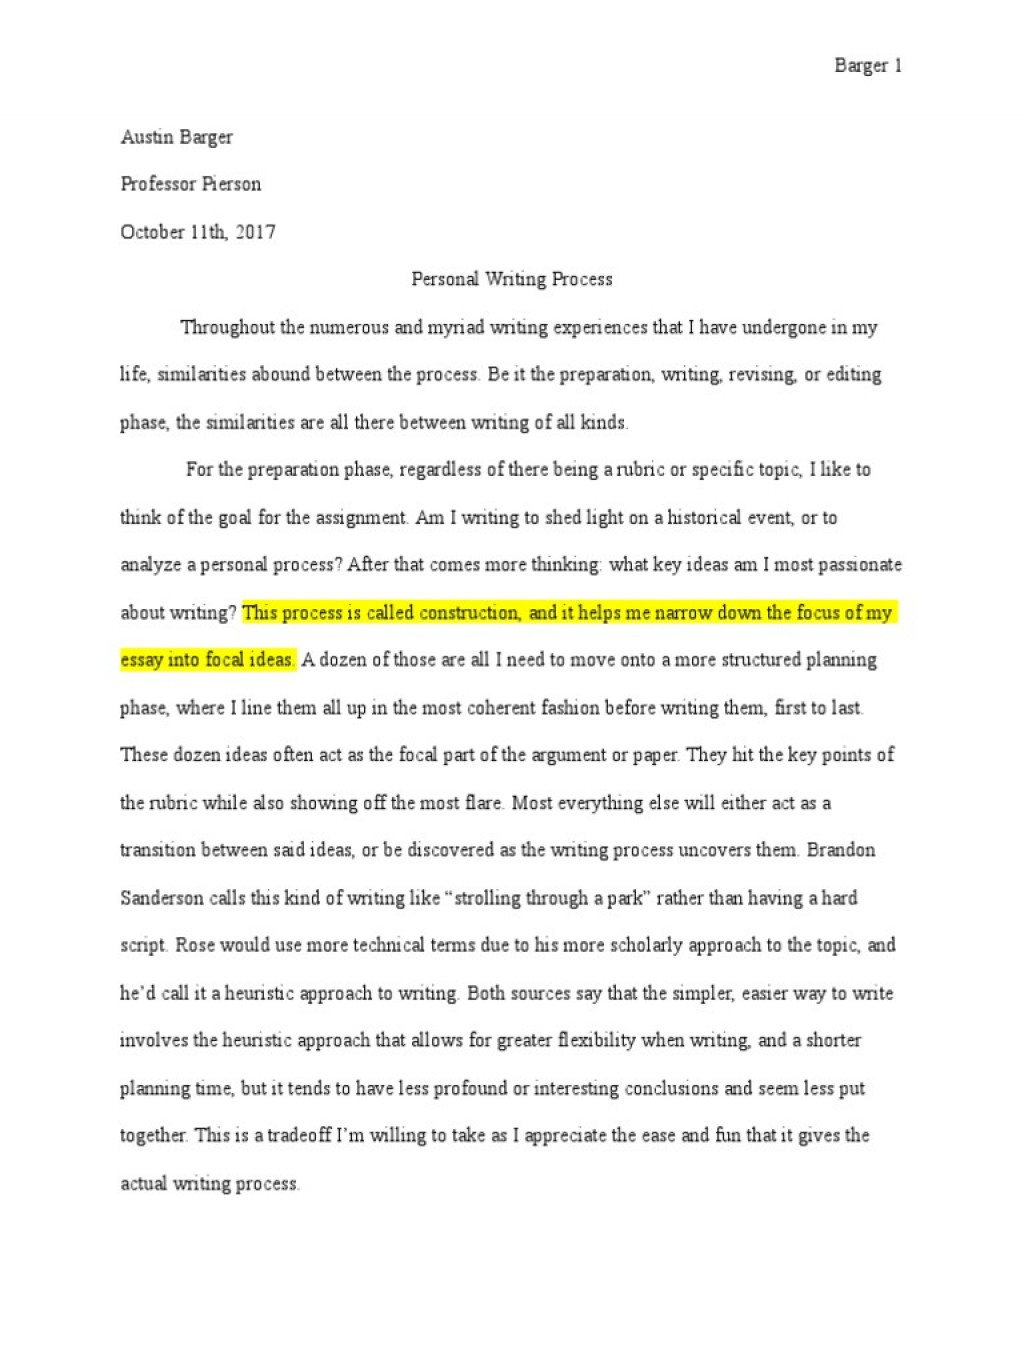 018 Process Essay Ideas Example Personal Writing Austinbarger Final Editing Essays Who Am I Introduction Examples Marvelous Funny Analysis Large